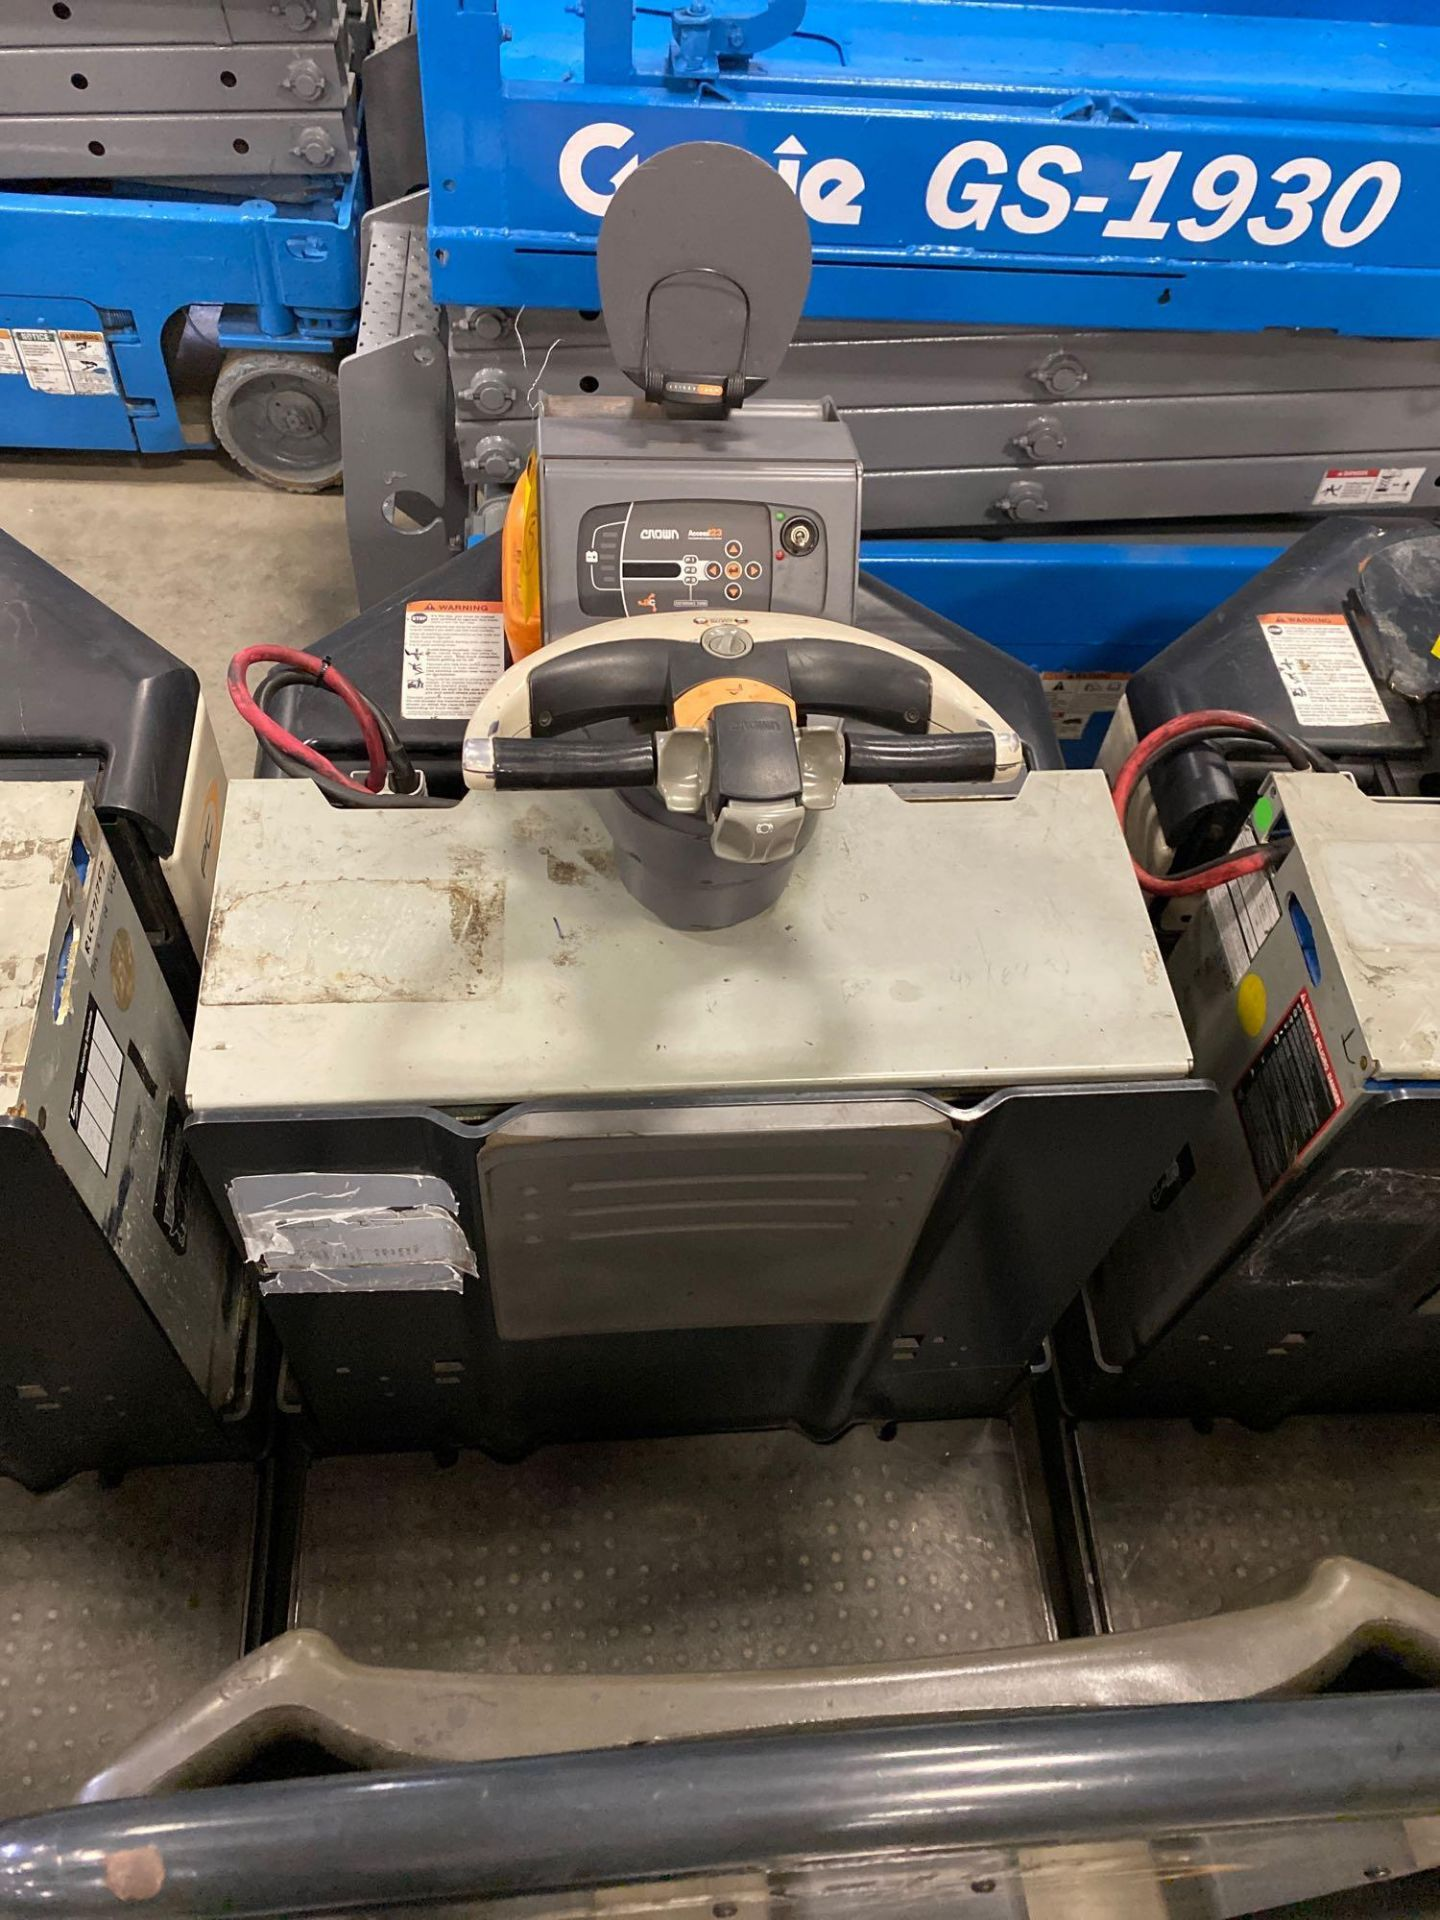 Lot 31 - 2012 CROWN ELECTRIC PALLET JACK, 8,000 LB CAPACITY, MODEL PC4500-80, 24V, RUNS AND OPERATES